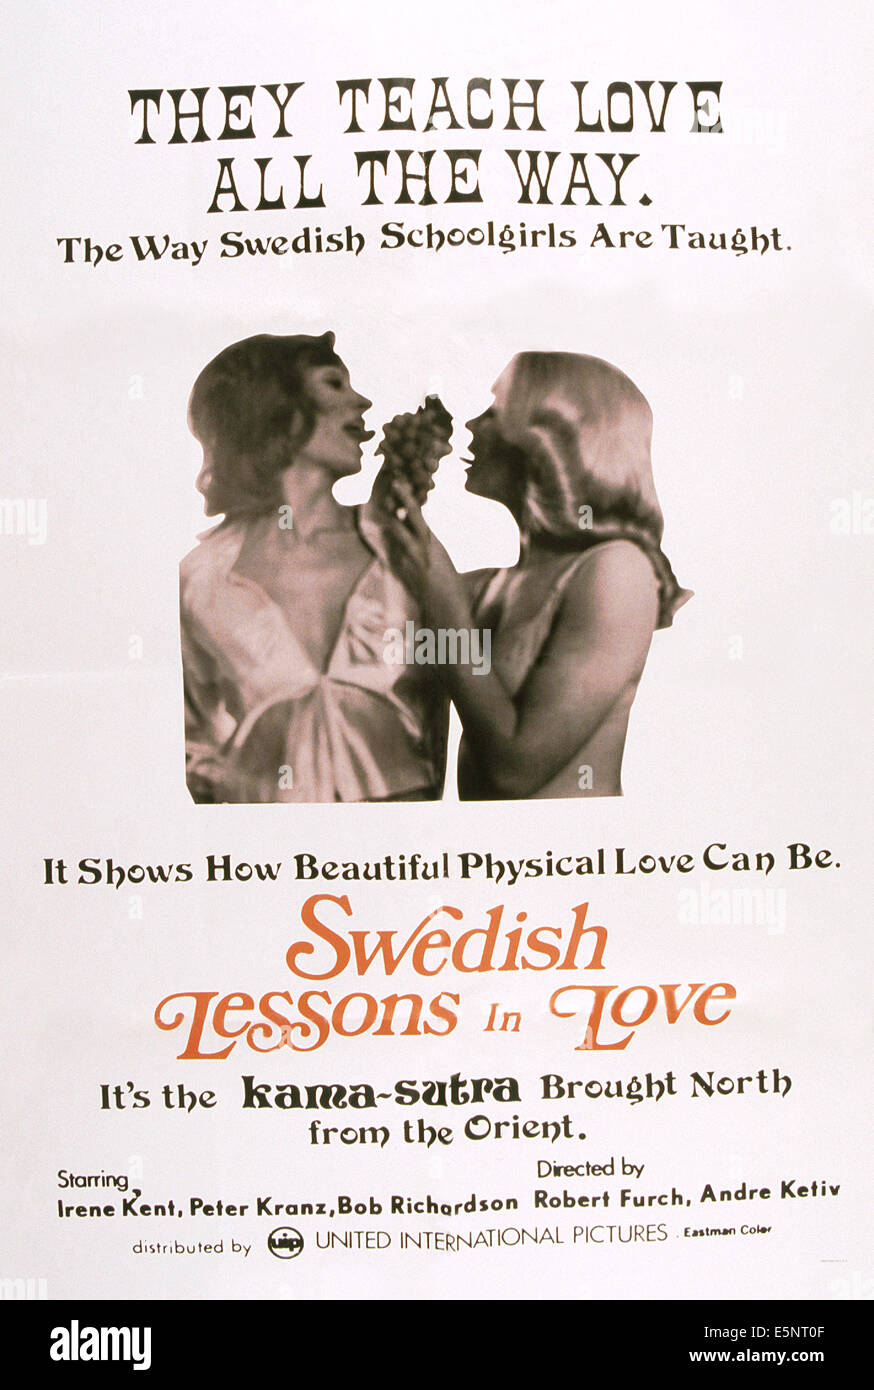 SWEDISH LESSONS IN LOVE, US poster, 1970s - Stock Image